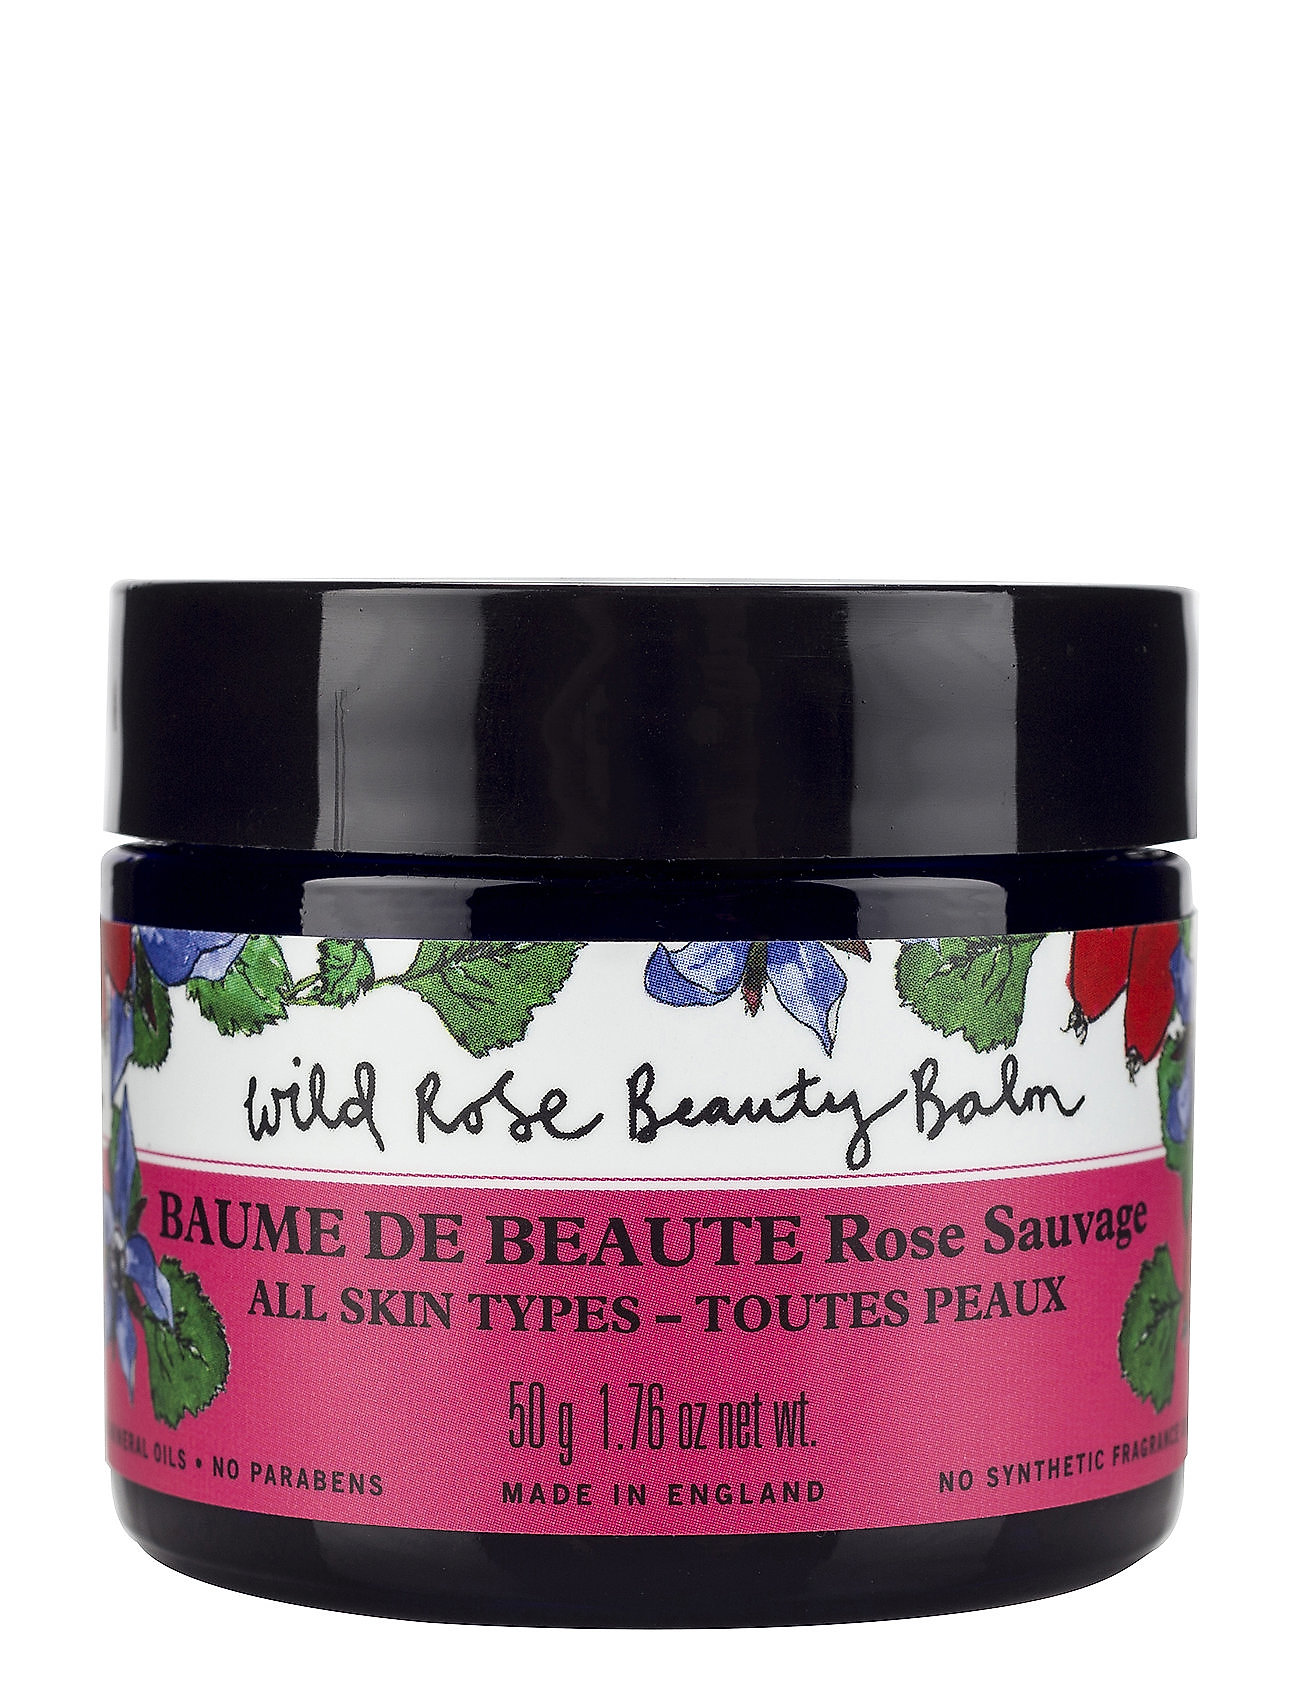 Image of Wild Rose Beauty Balm Beauty WOMEN Skin Care Face Day Creams Nude Neal's Yard Remedies (3408639921)